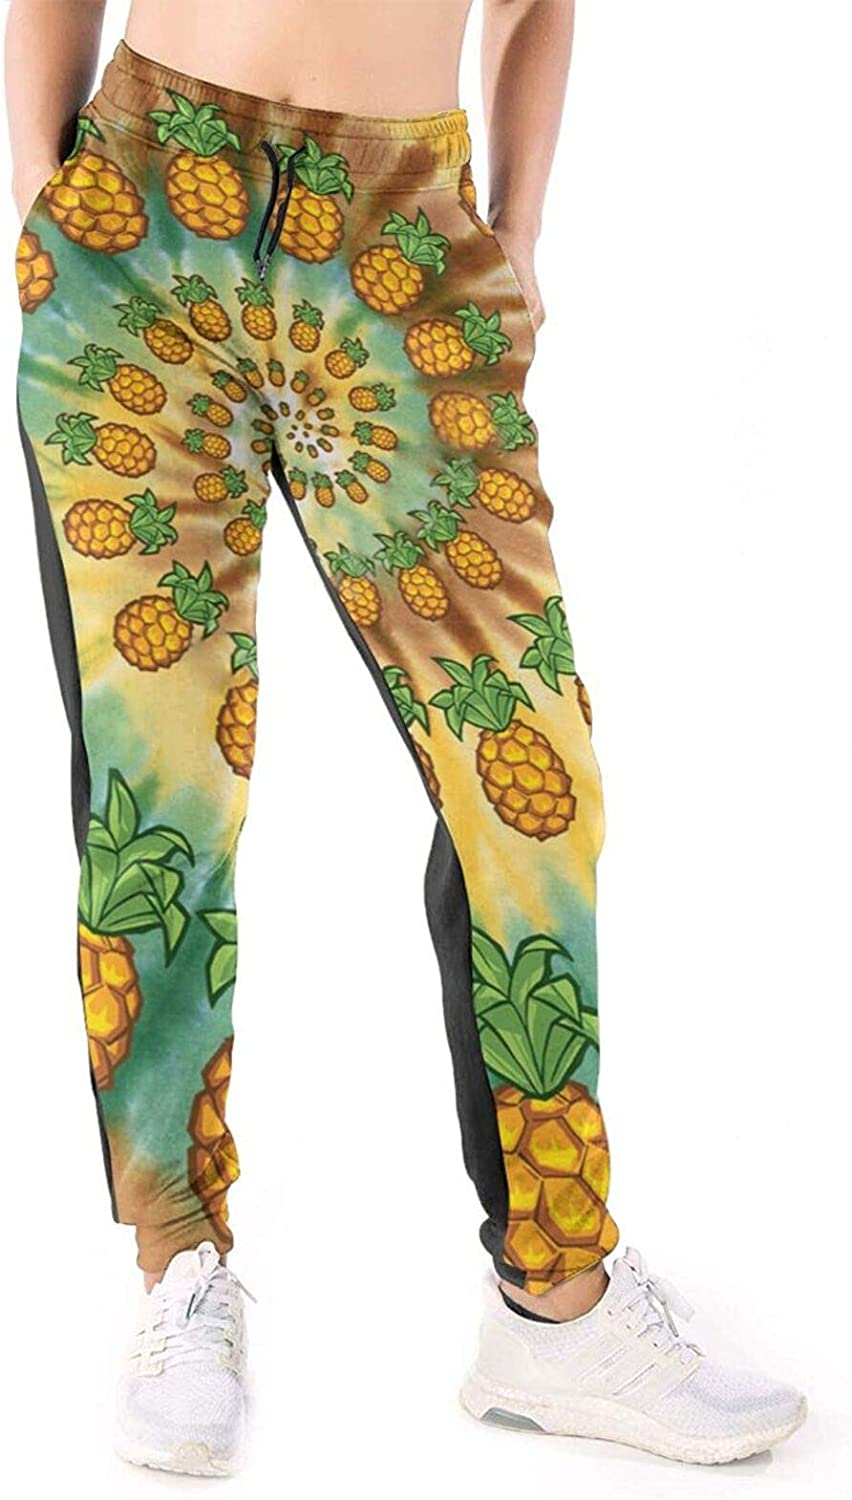 Women Joggers Pants Pineapple Spiral Tie-Dye Athletic Sweatpants with Pockets Casual Trousers Baggy